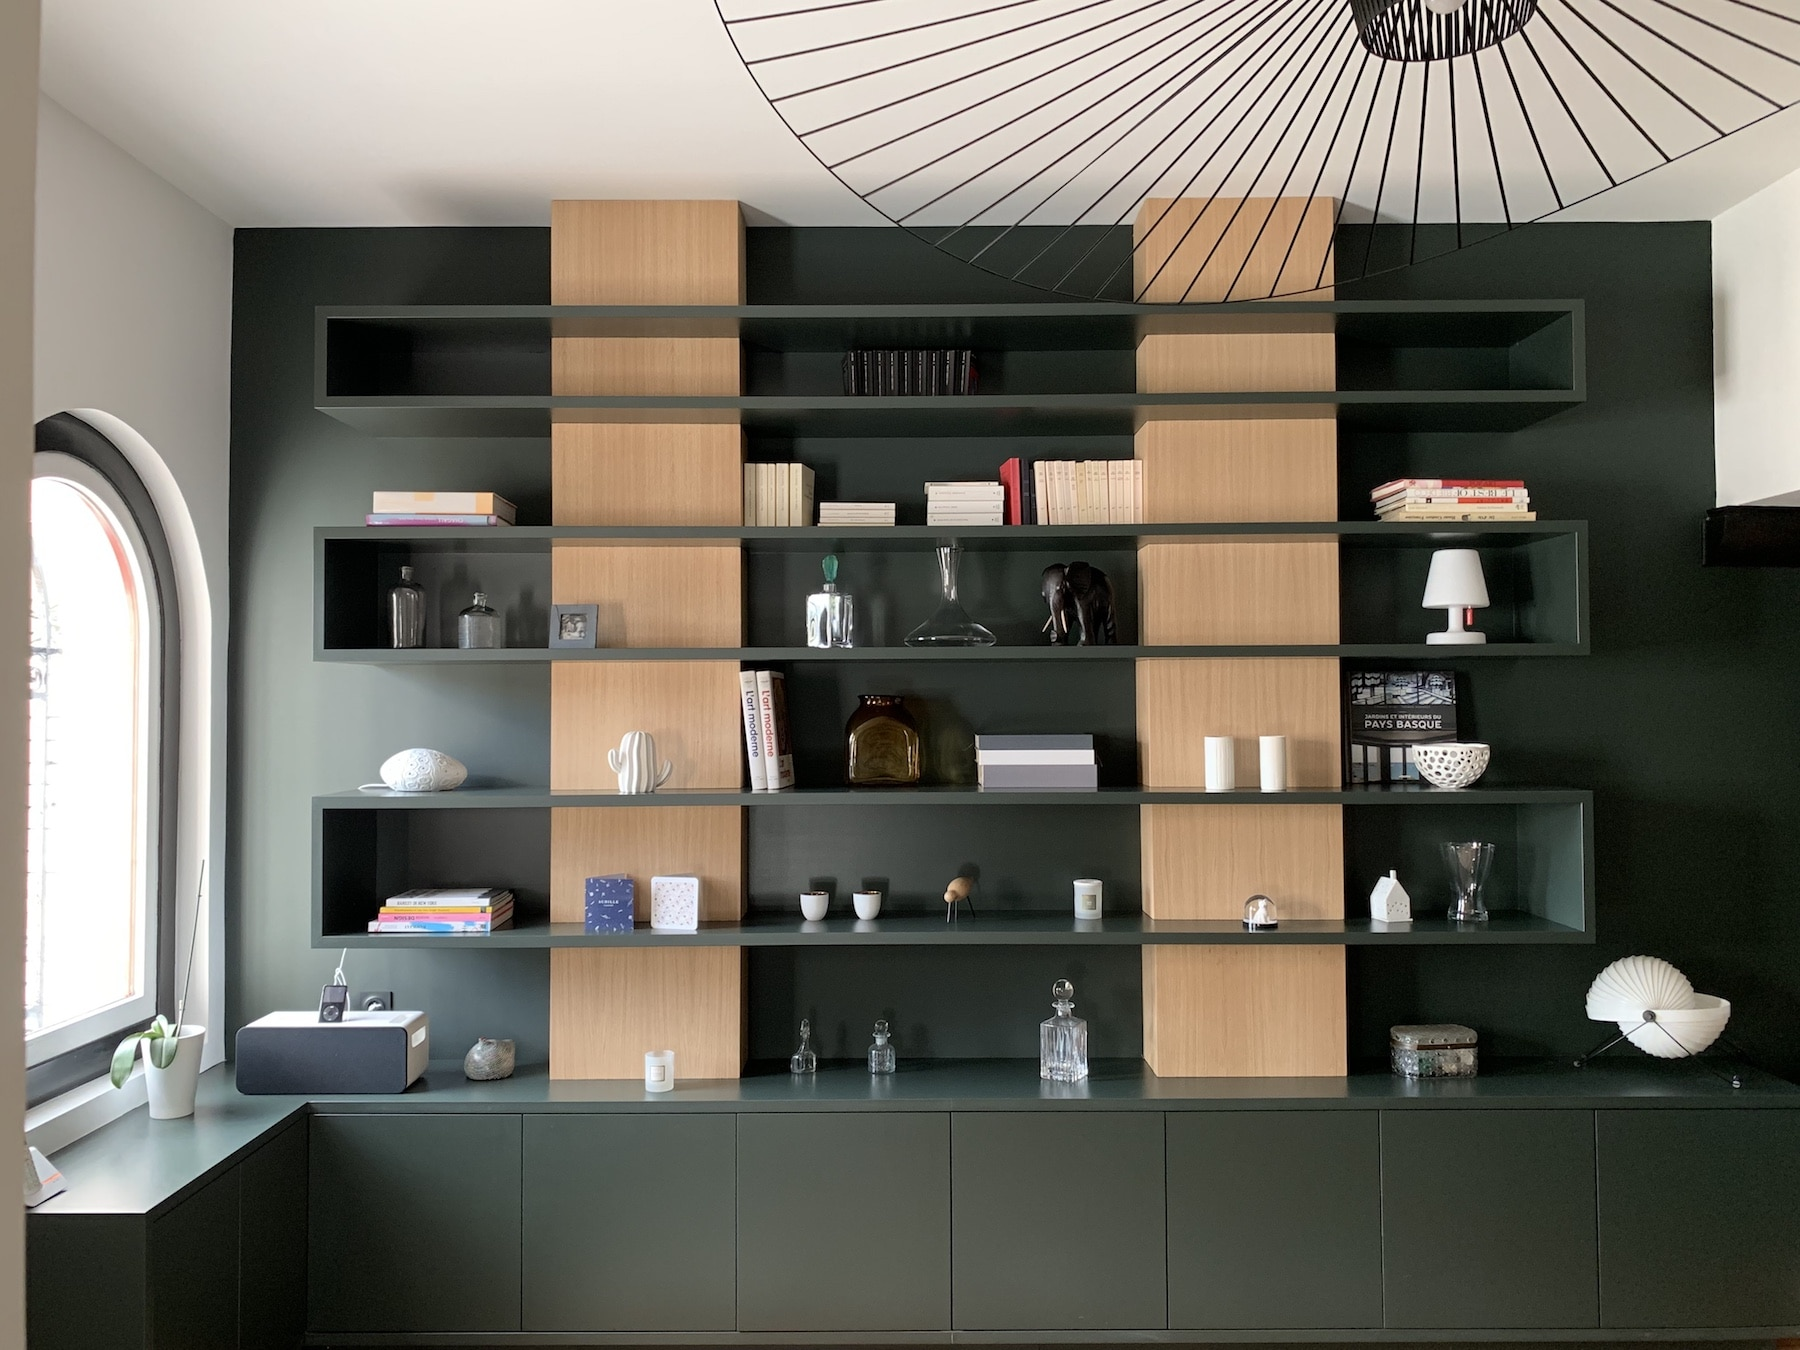 conception-fabrication-pose-bibliotheque-darrieumerlou-agencement-interieur-bayonne-anglet-biarritz-alentours-01